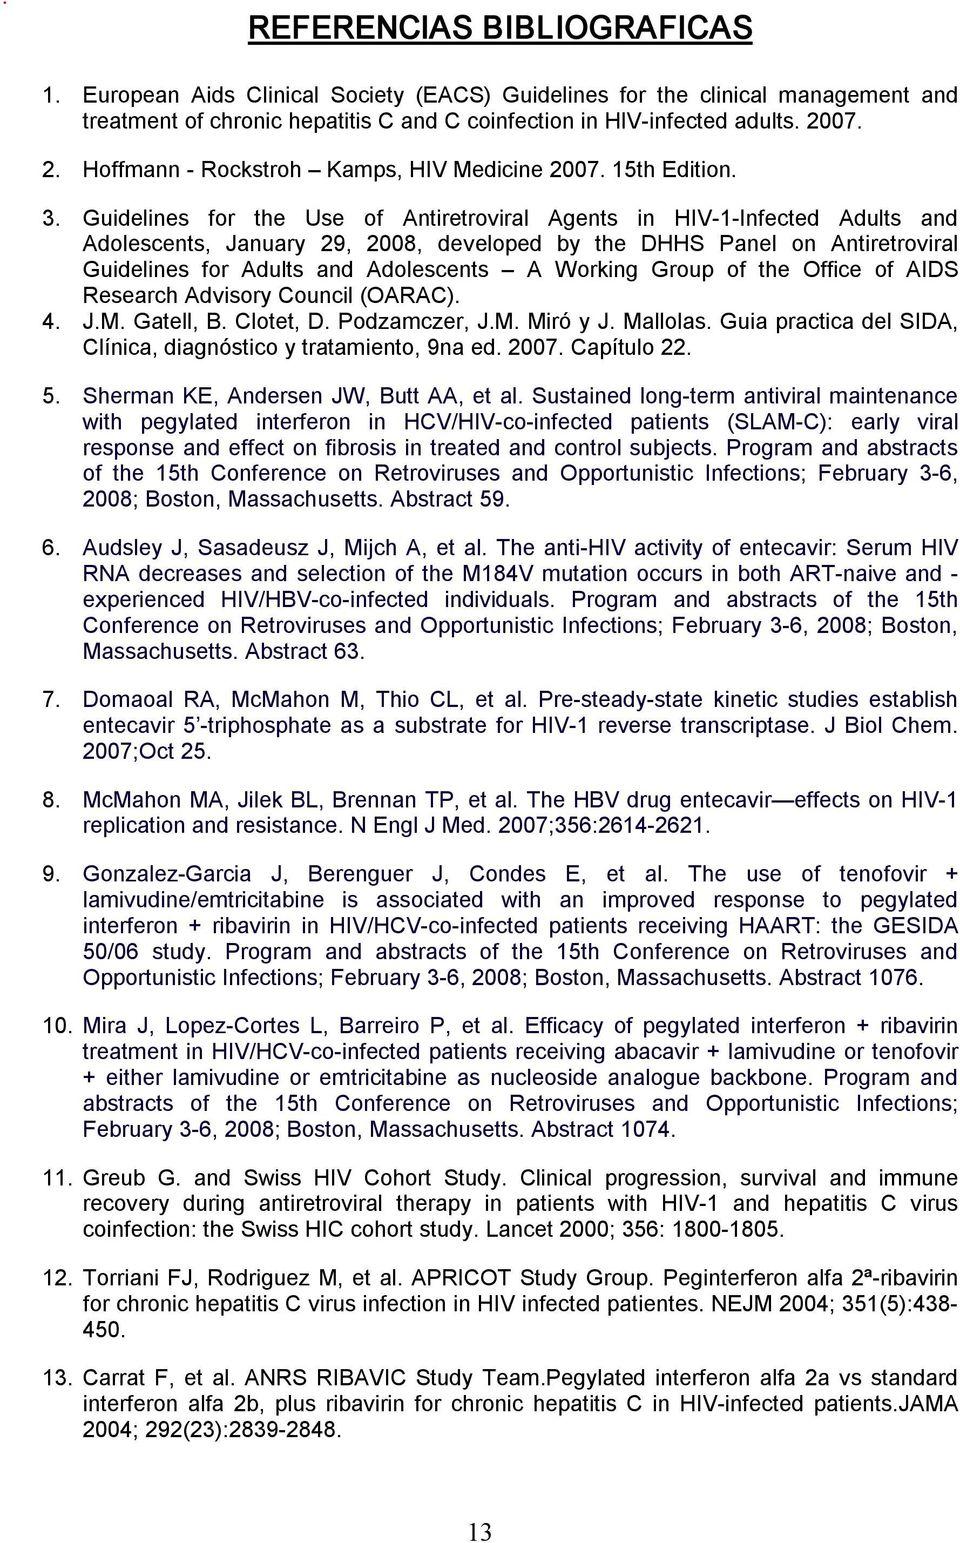 Guidelines for the Use of Antiretroviral Agents in HIV 1 Infected Adults and Adolescents, January 29, 2008, developed by the DHHS Panel on Antiretroviral Guidelines for Adults and Adolescents A